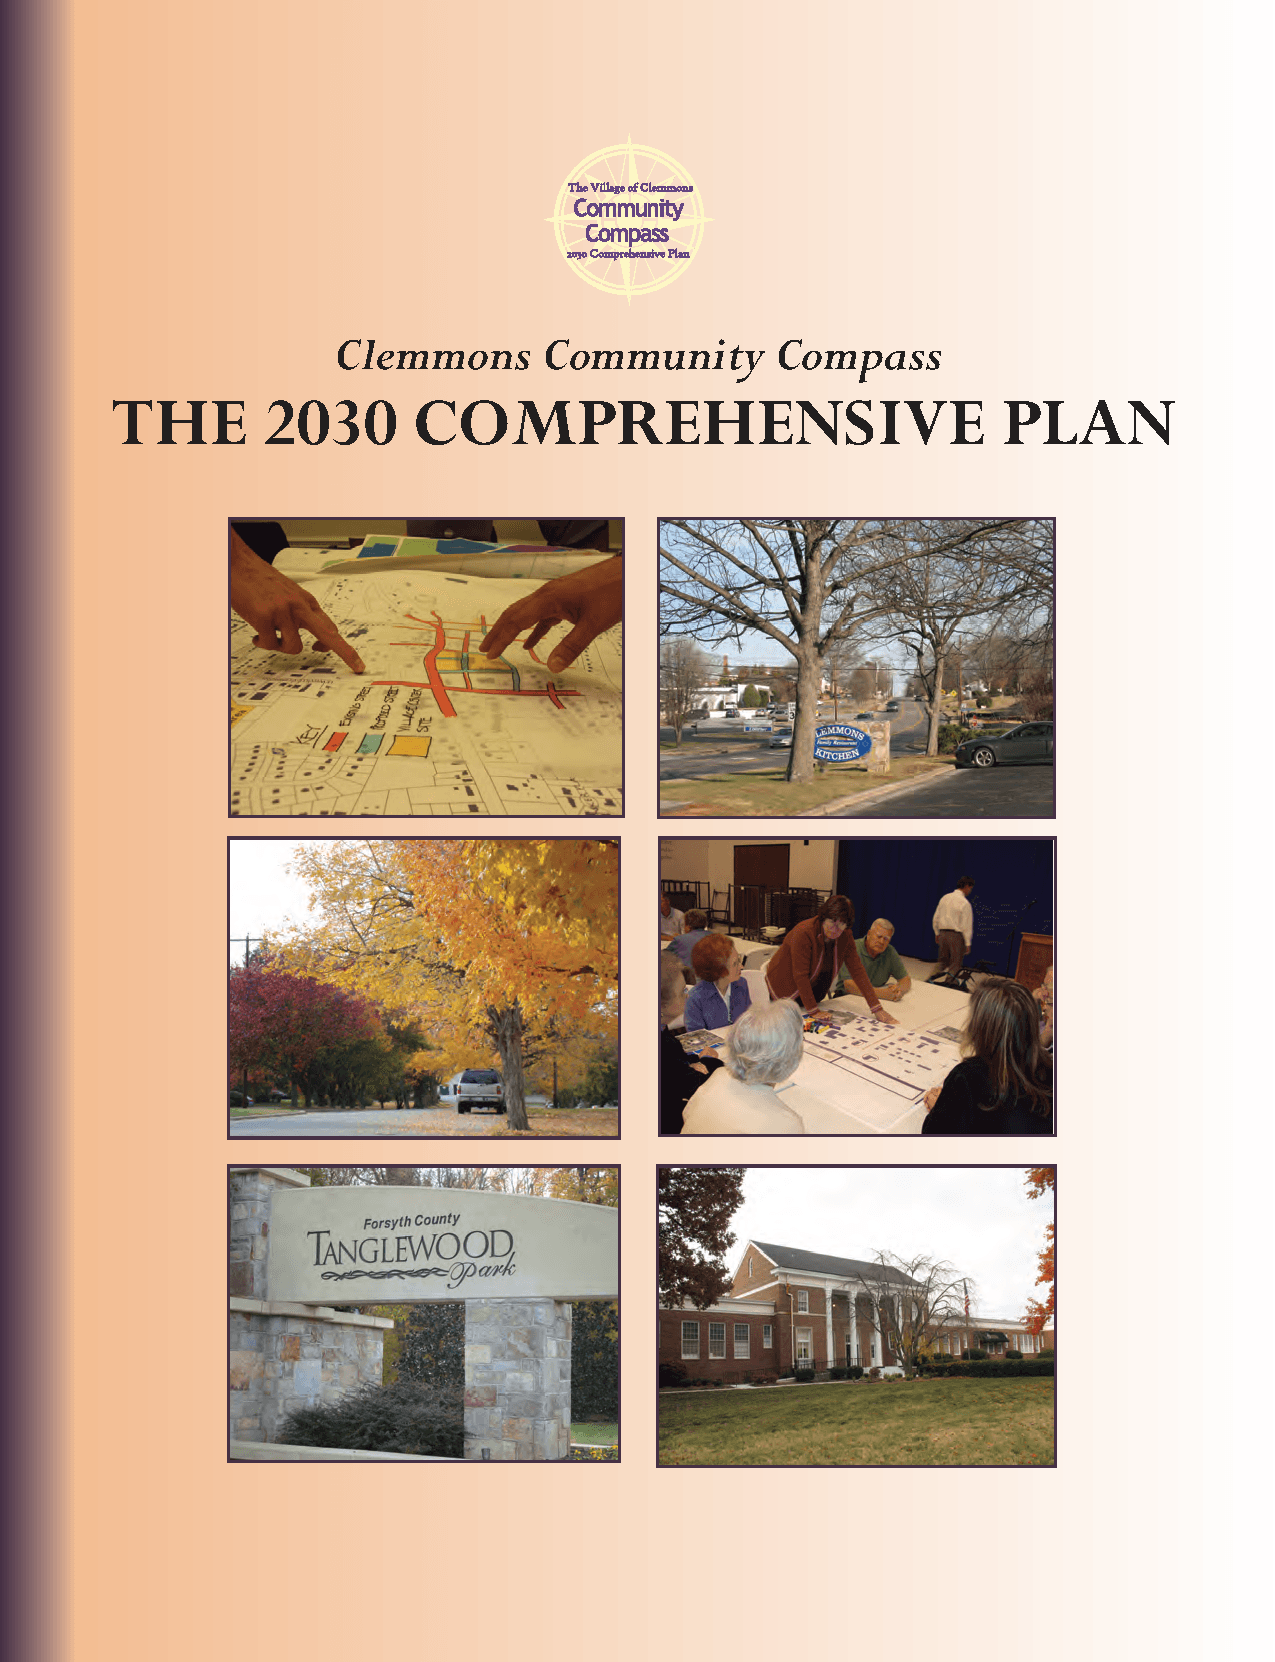 Clemmons Community Compass the 2030 Comprehensive Plan (JPG)